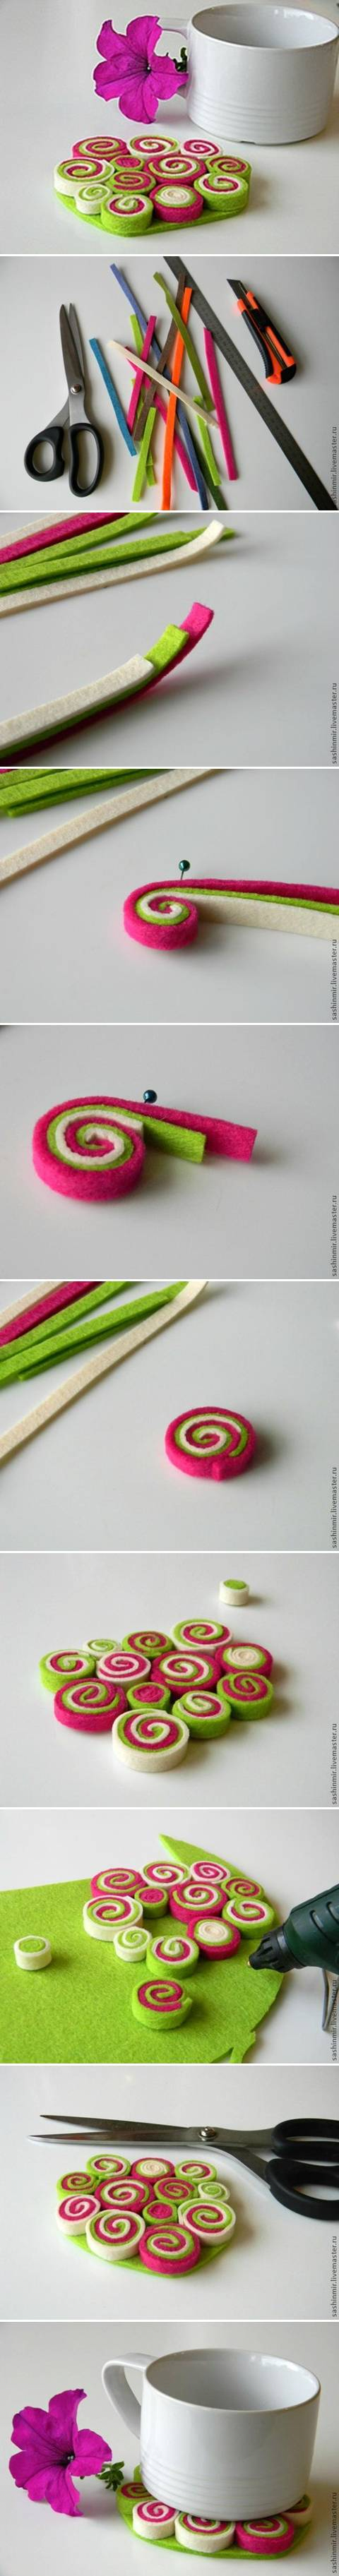 How To Make Felt Coaster step by step DIY tutorial instructions